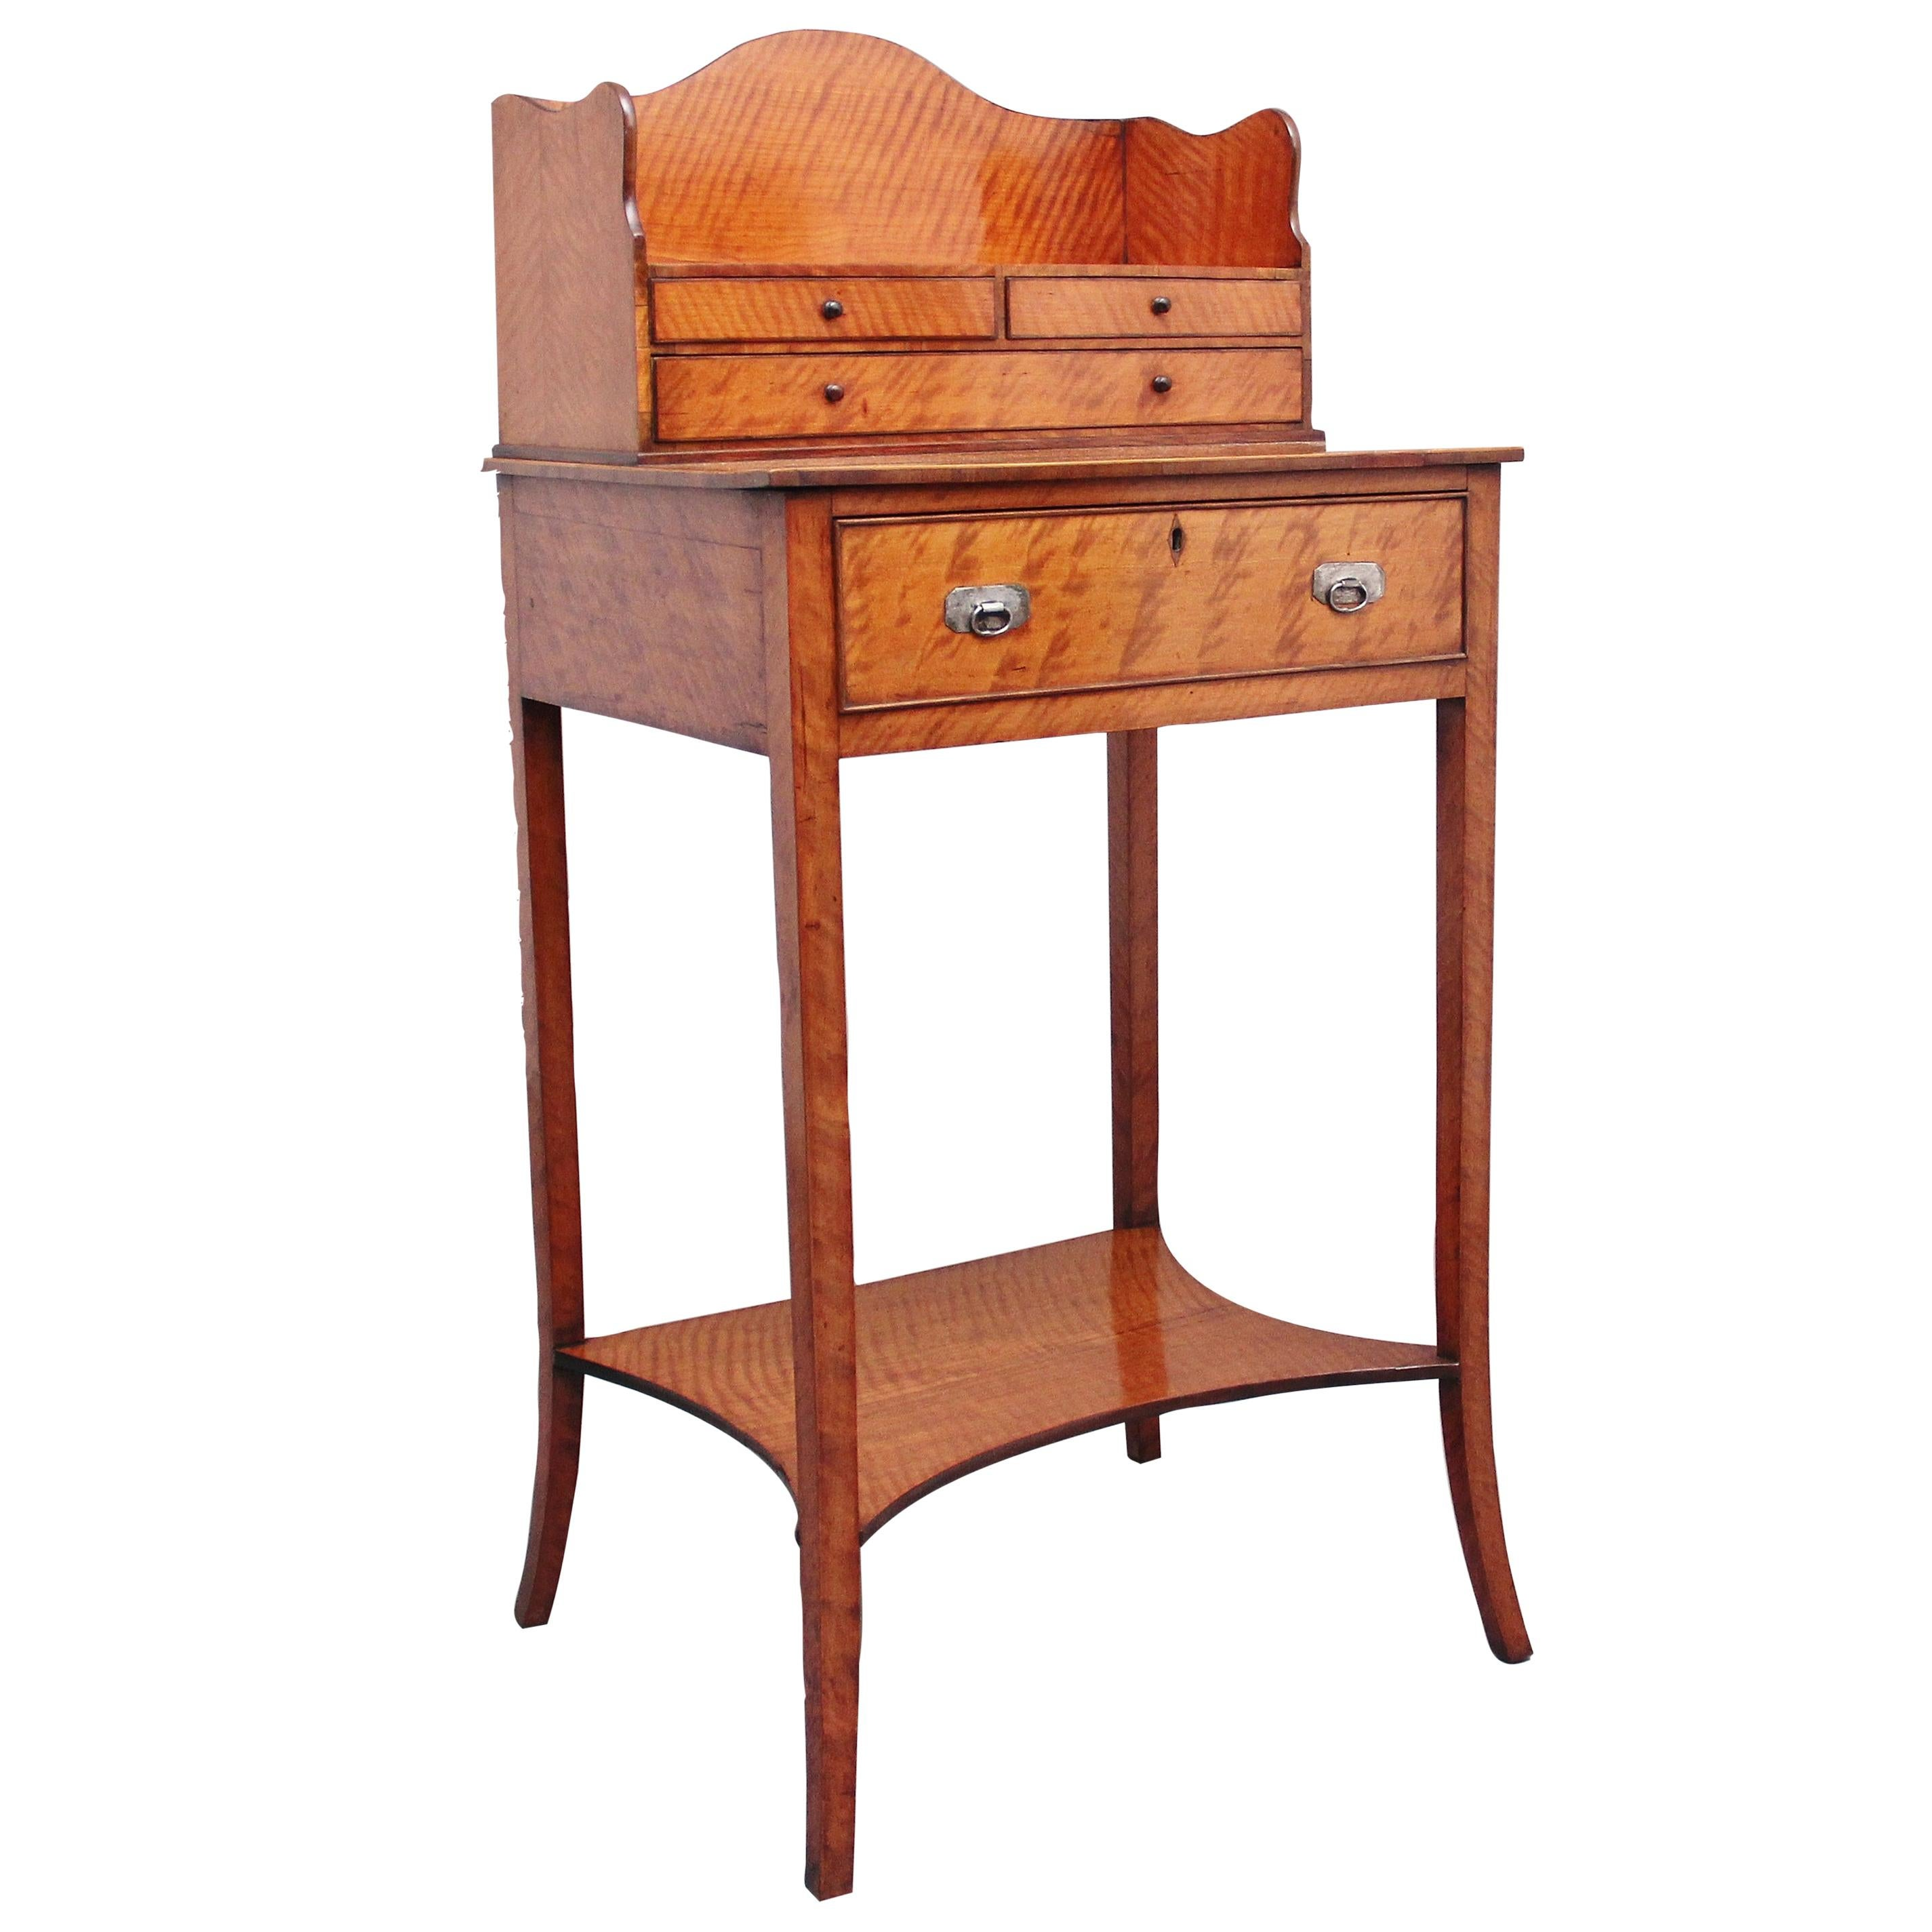 19th Century Satinwood Ladies Writing Table in the Sheraton Style